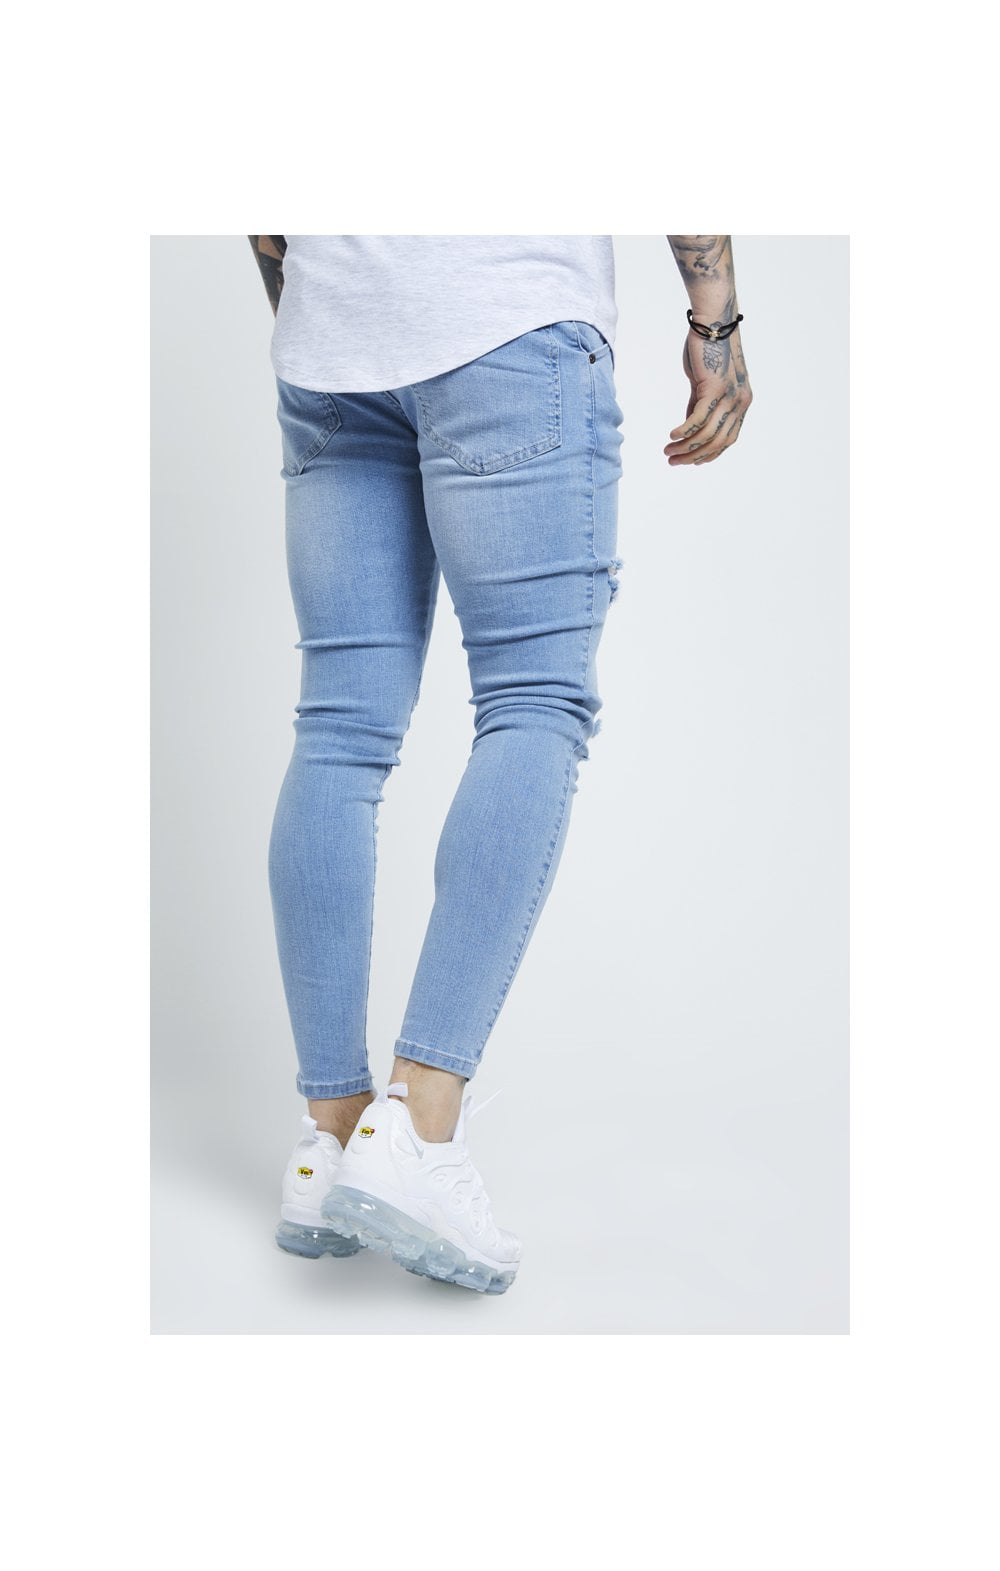 SikSilk Distressed Skinny Jeans – Light Wash (2)